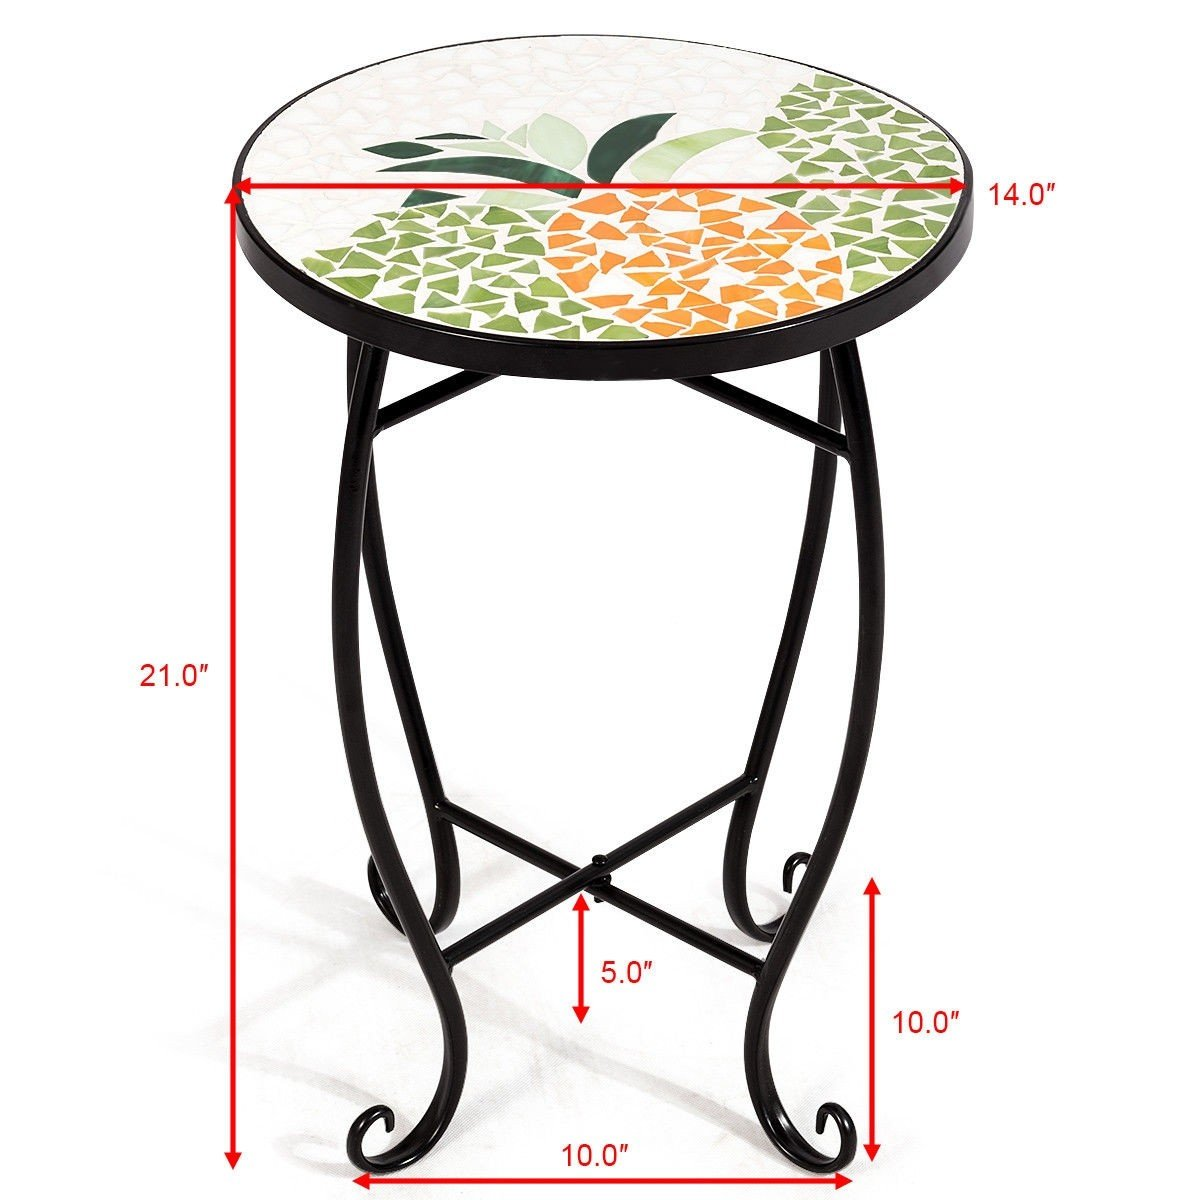 custpromo mosaic accent table metal round side glass top plant stand cobalt indoor outdoor garden patio sweet pineapple kitchen blue and white porcelain lamps marble lamp